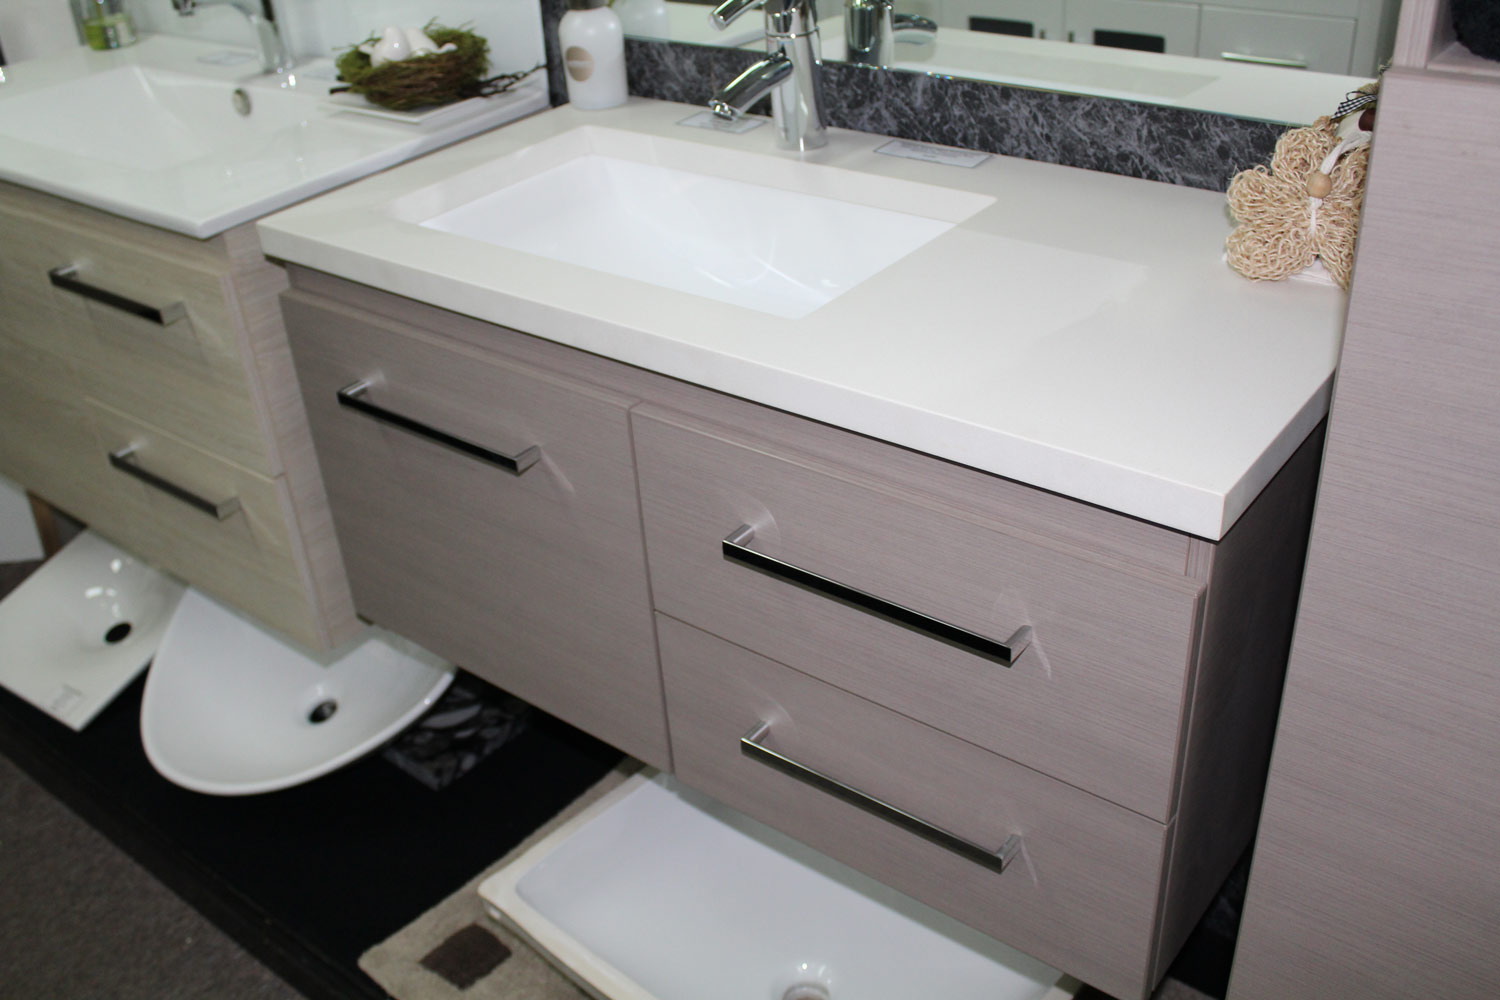 Bathroom Vanities Qld timberline dakota 900mm wall hung vanity – bathroom supplies in